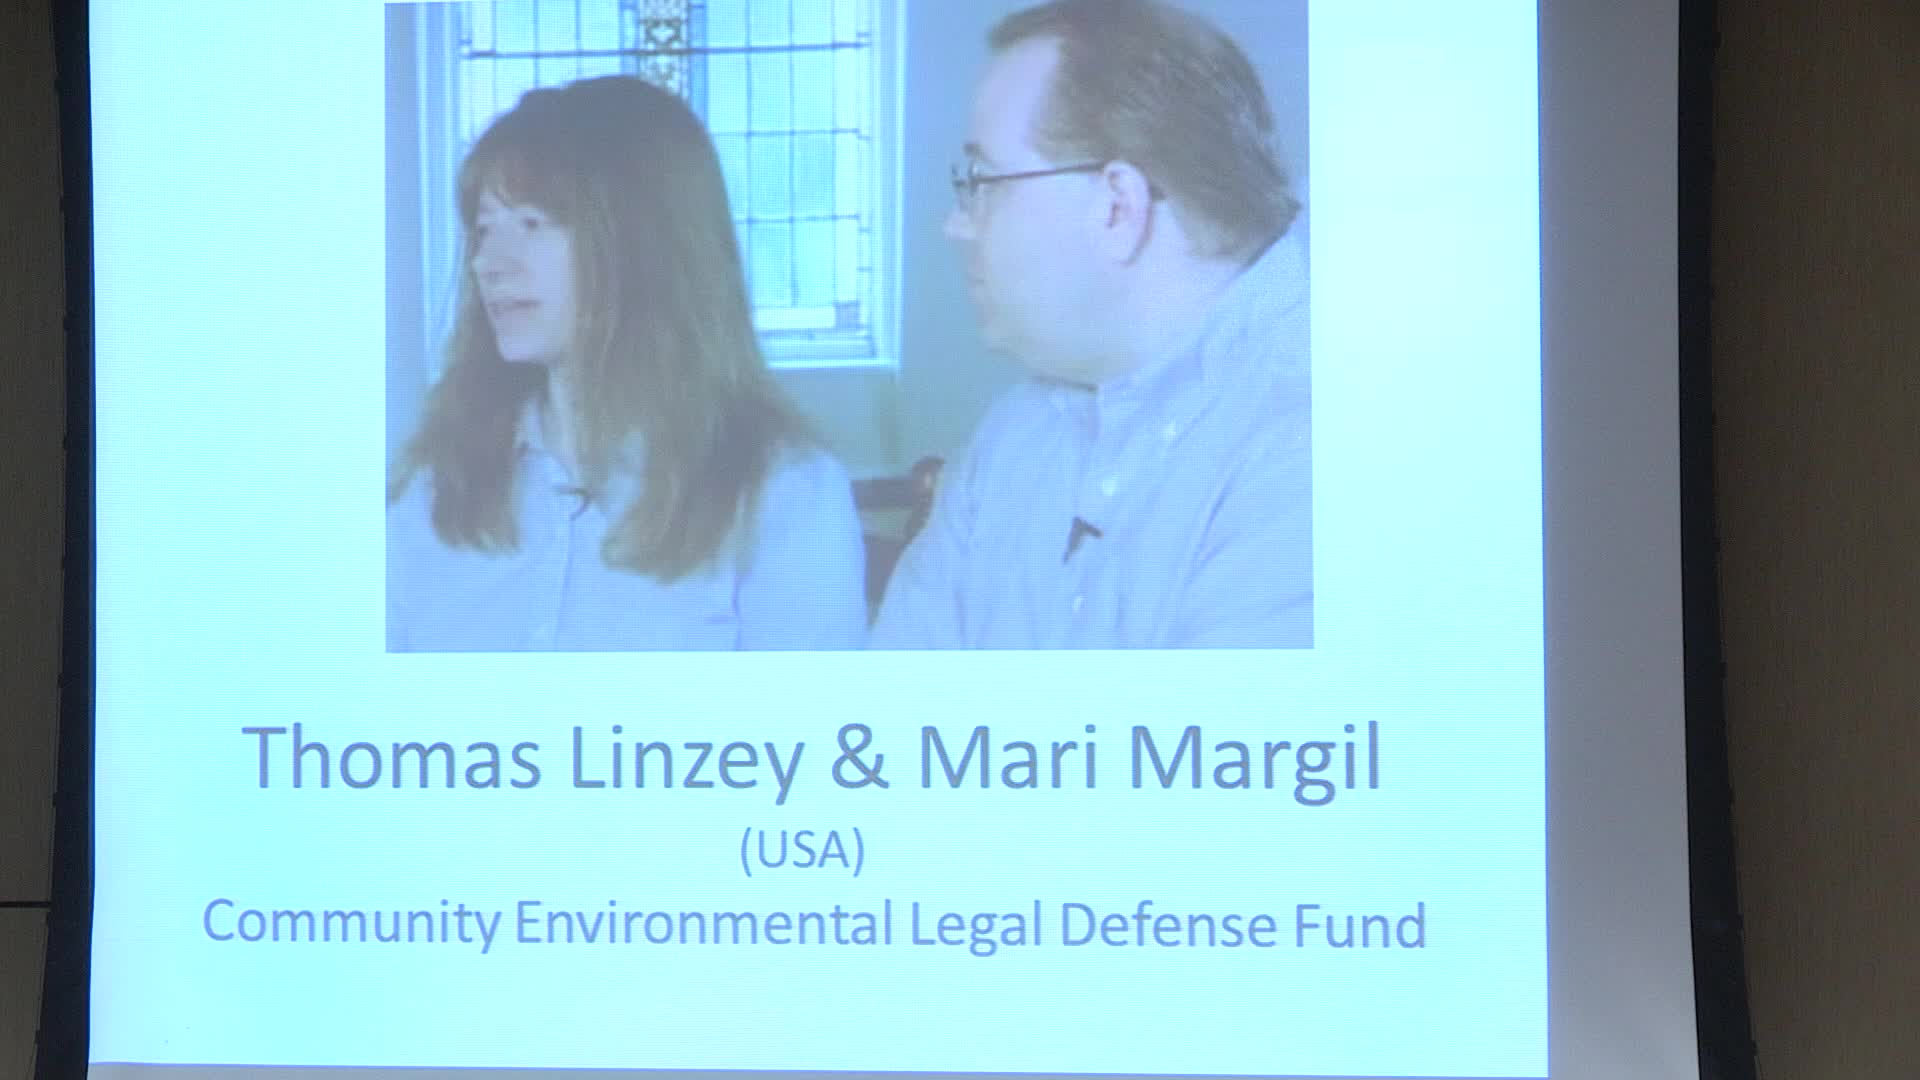 Warrior Lawyers: From Manila to Manhatten, Attourneys for the Earth by Dr. Silver Donald Cameron